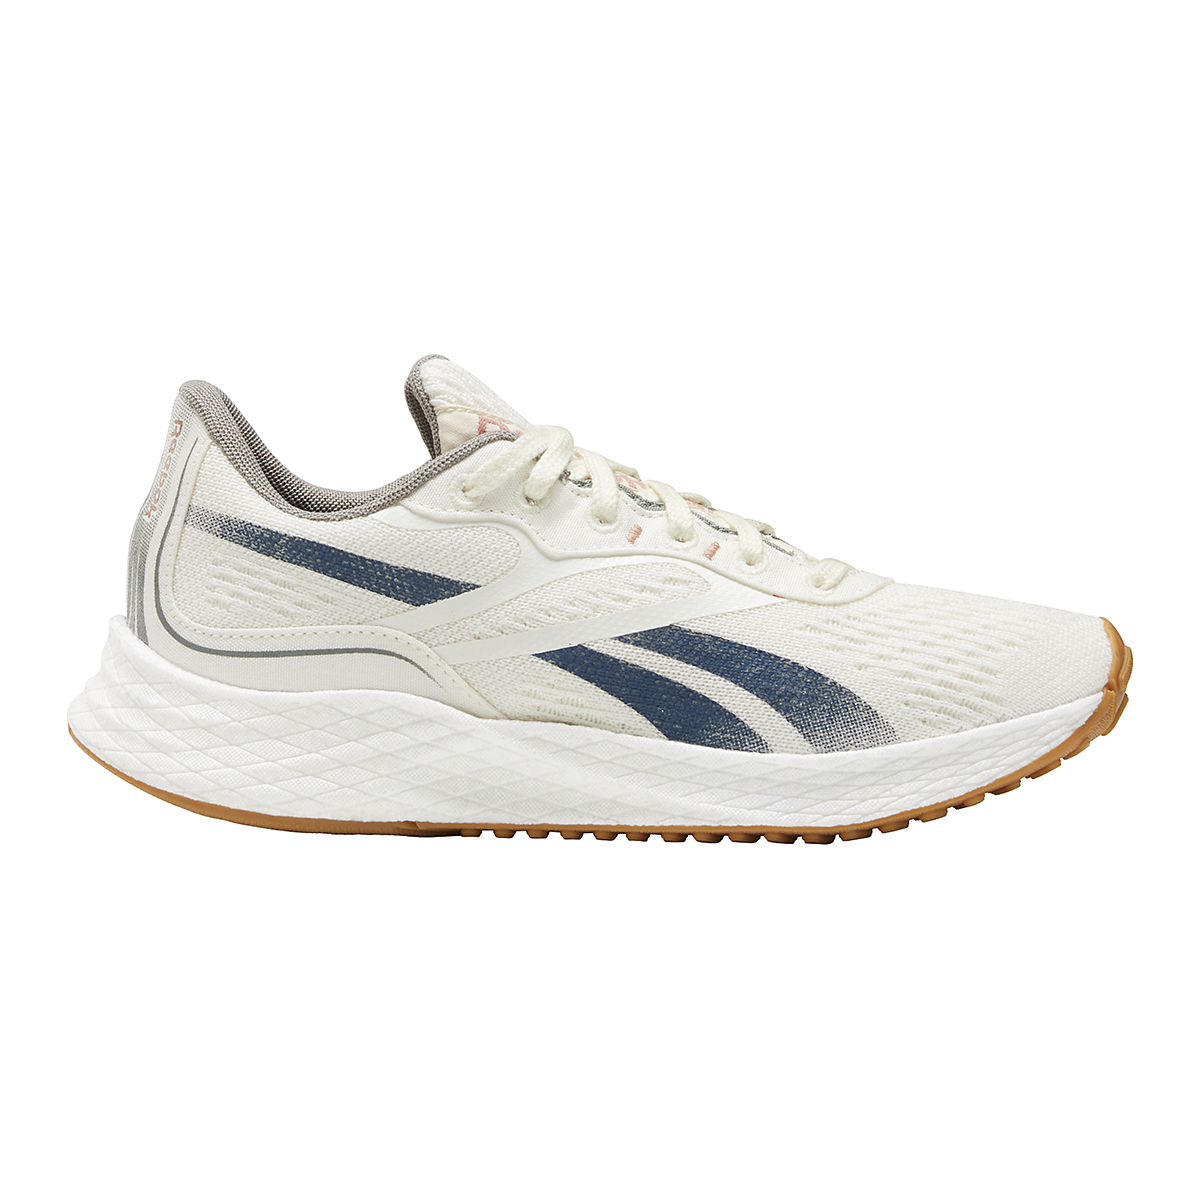 Women's Reebok Floatride Energy Grow Running Shoe - Color: Classic White/Brave Blue/Boulder Grey - Size: 5 - Width: Regular, Classic White/Brave Blue/Boulder Grey, large, image 1